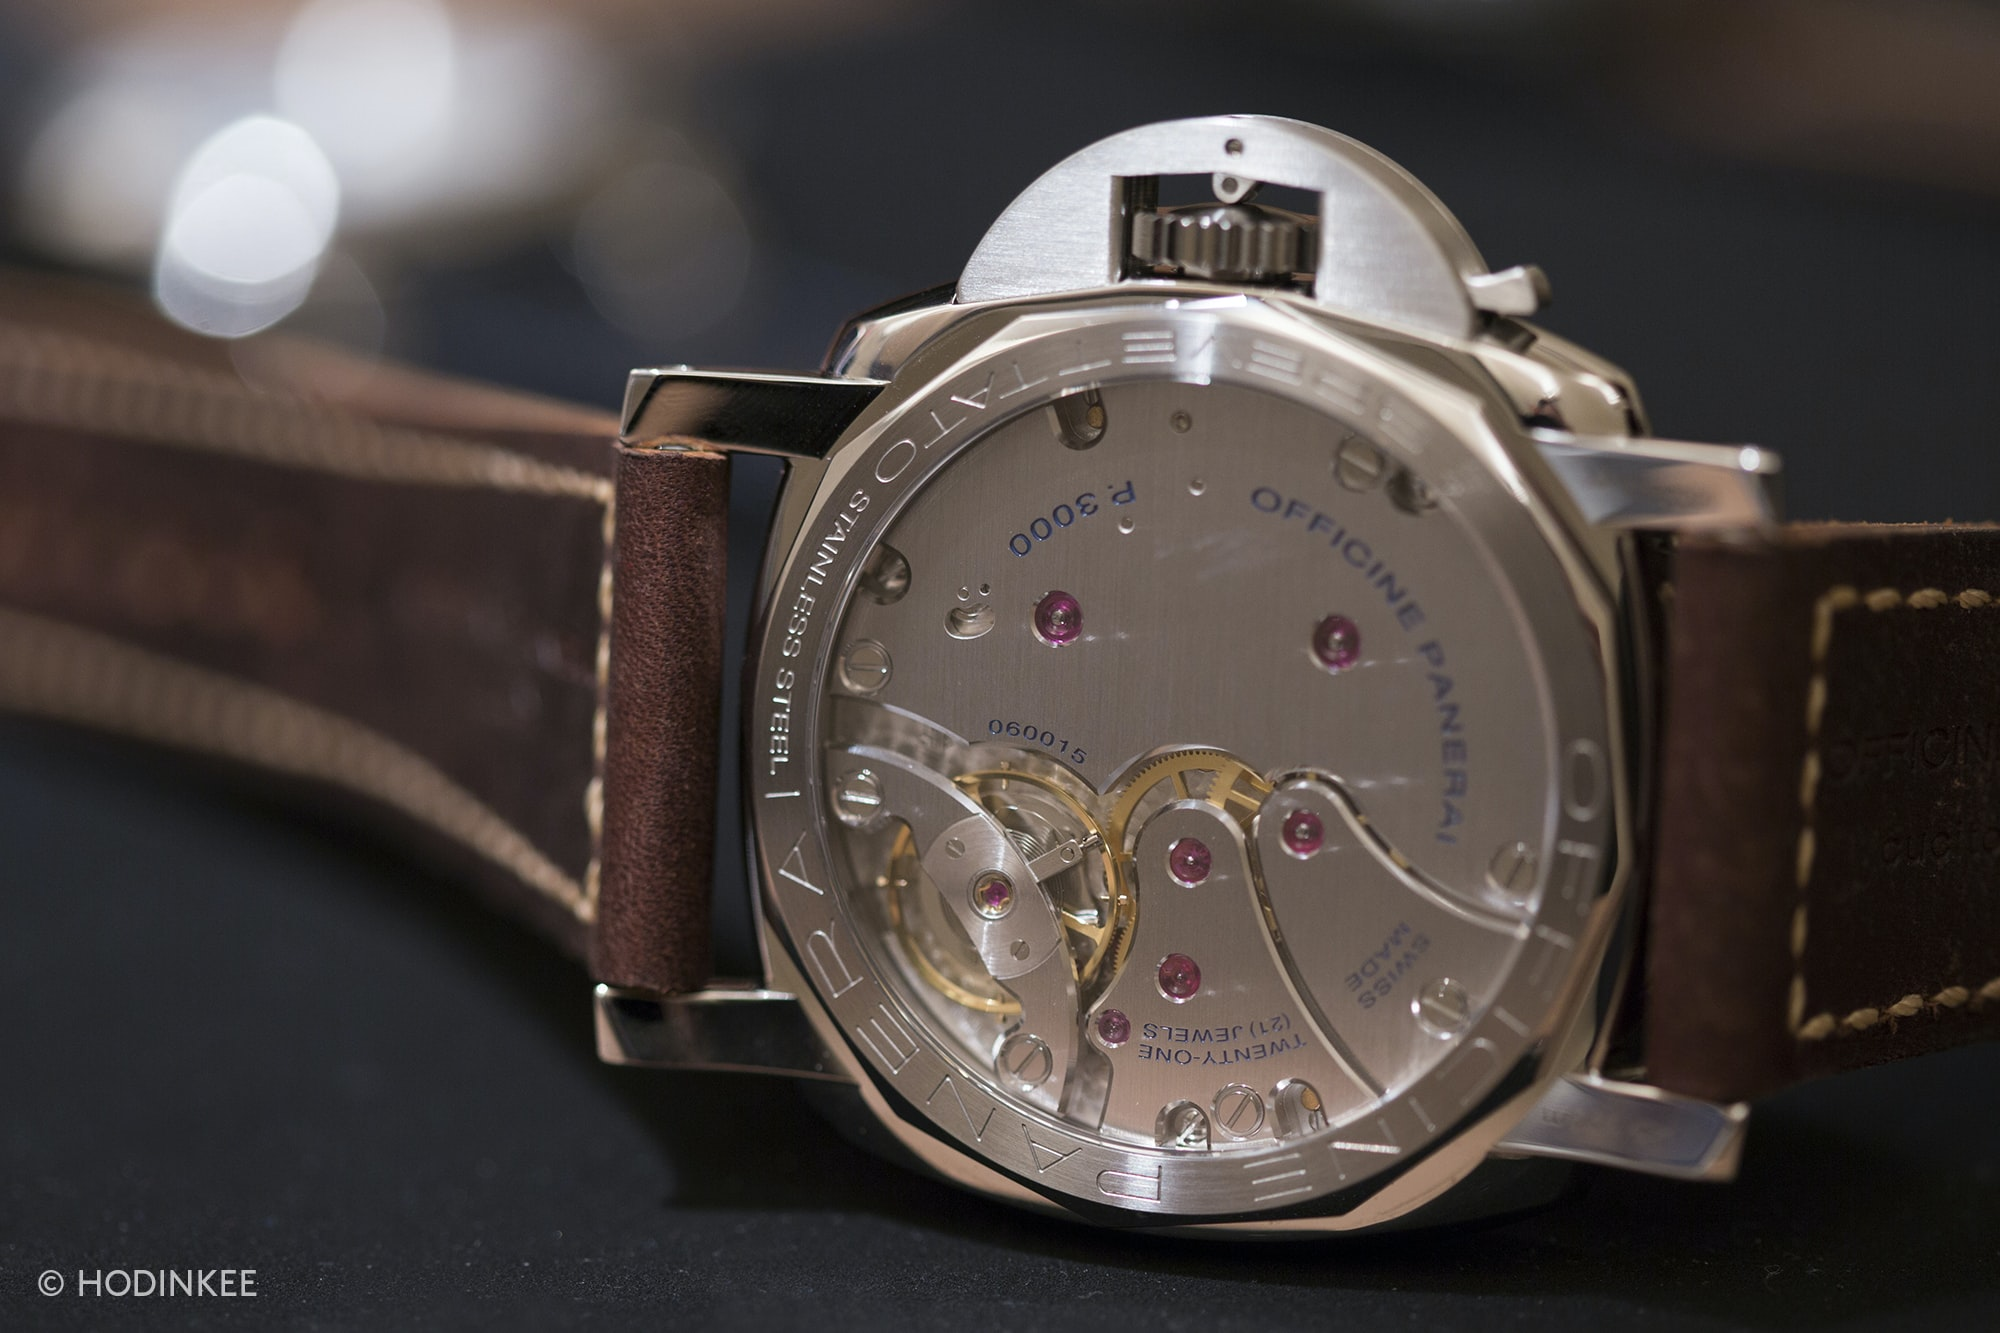 Hands-On: The Panerai Radiomir 1940 3 Days PAM 662 And Luminor 1950 PAM 663 Hands-On: The Panerai Radiomir 1940 3 Days PAM 662 And Luminor 1950 PAM 663 Panerai Luminor 1950 PAM 663 back